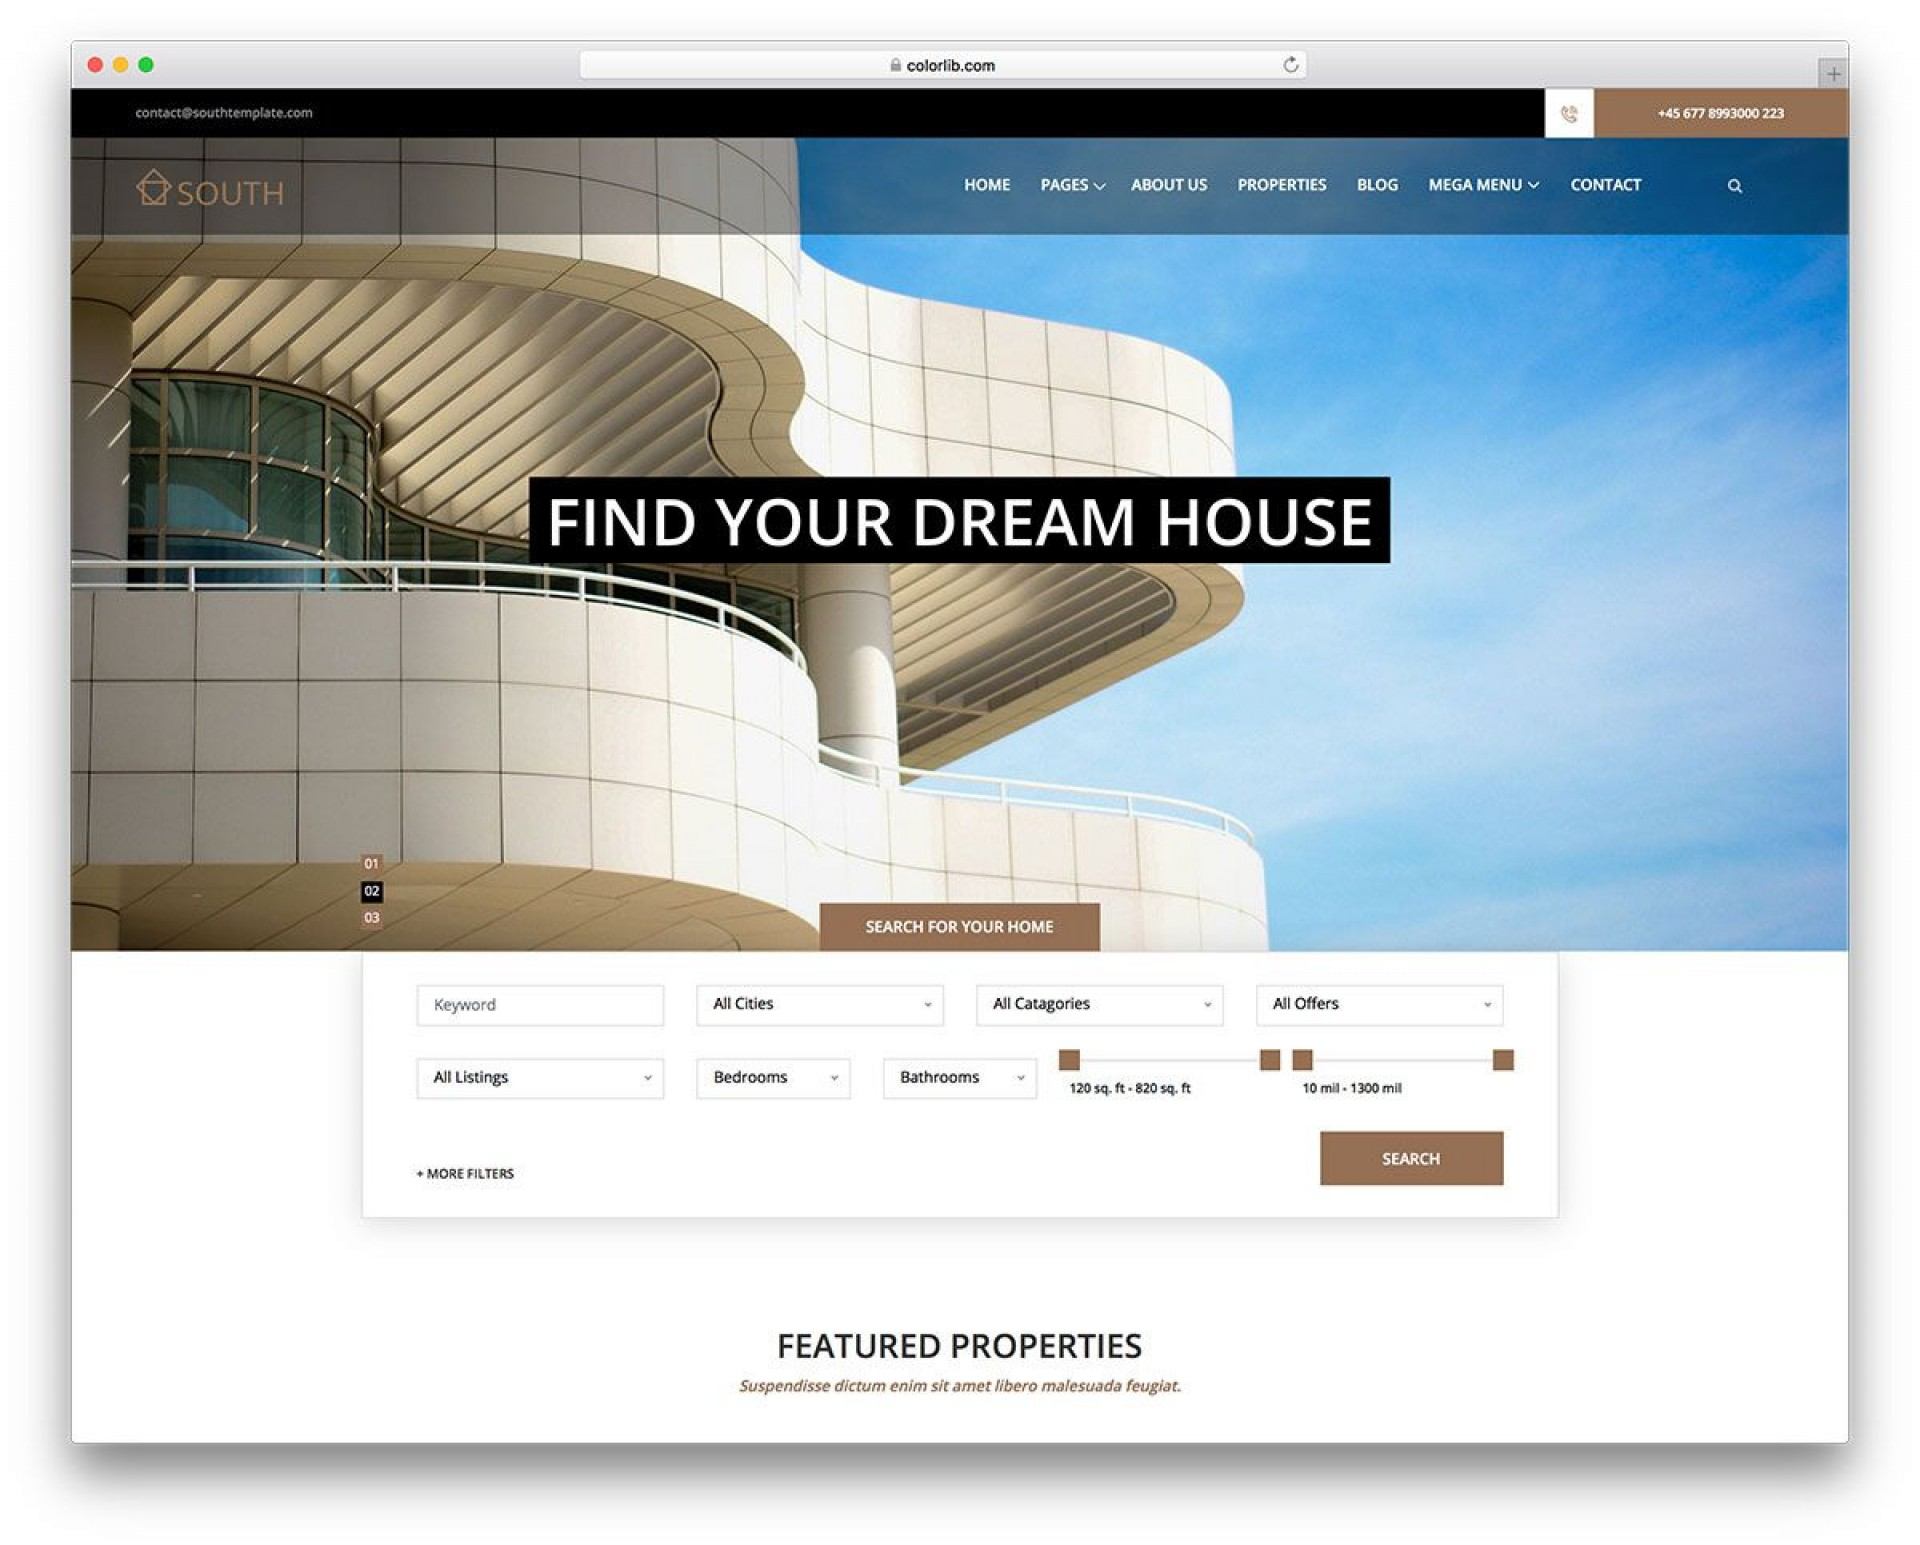 005 Phenomenal Real Estate Website Template Picture  Templates Free Download Bootstrap 4 Listing Wordpres1920